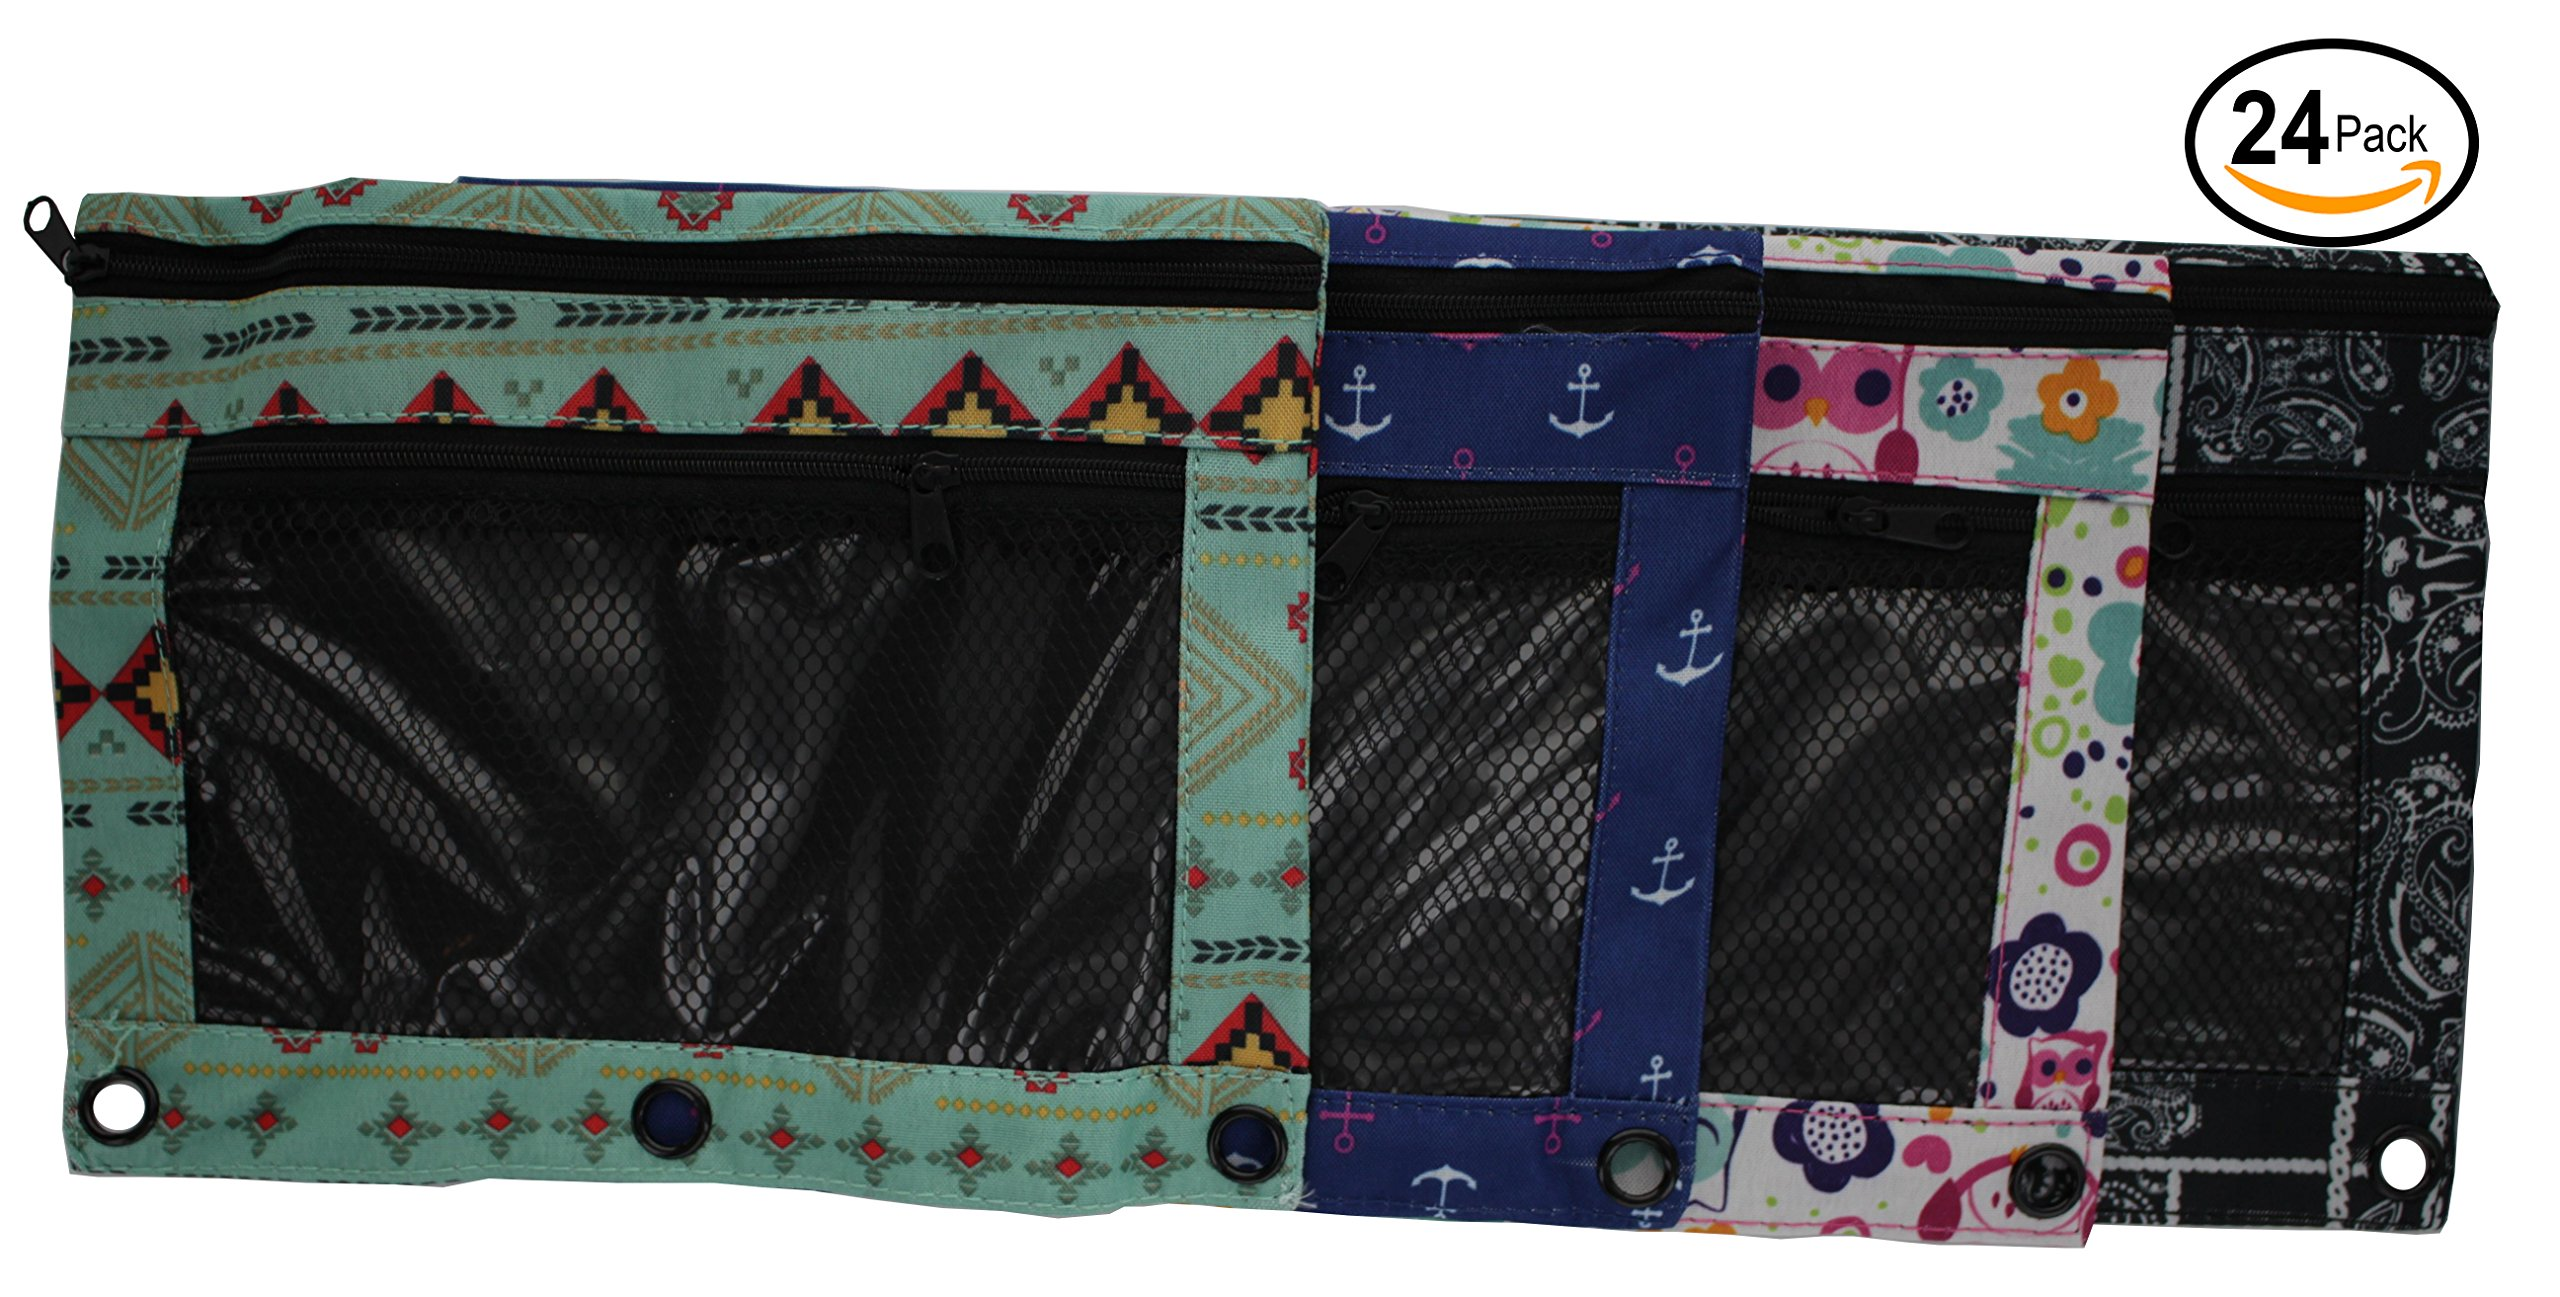 Emraw 24-Pack Double Pocket Zippered Trendsetters Pencil Pouches with 3-Ring Grommet Holes & Quick View Mesh Pocket - Includes 4 Different Styles